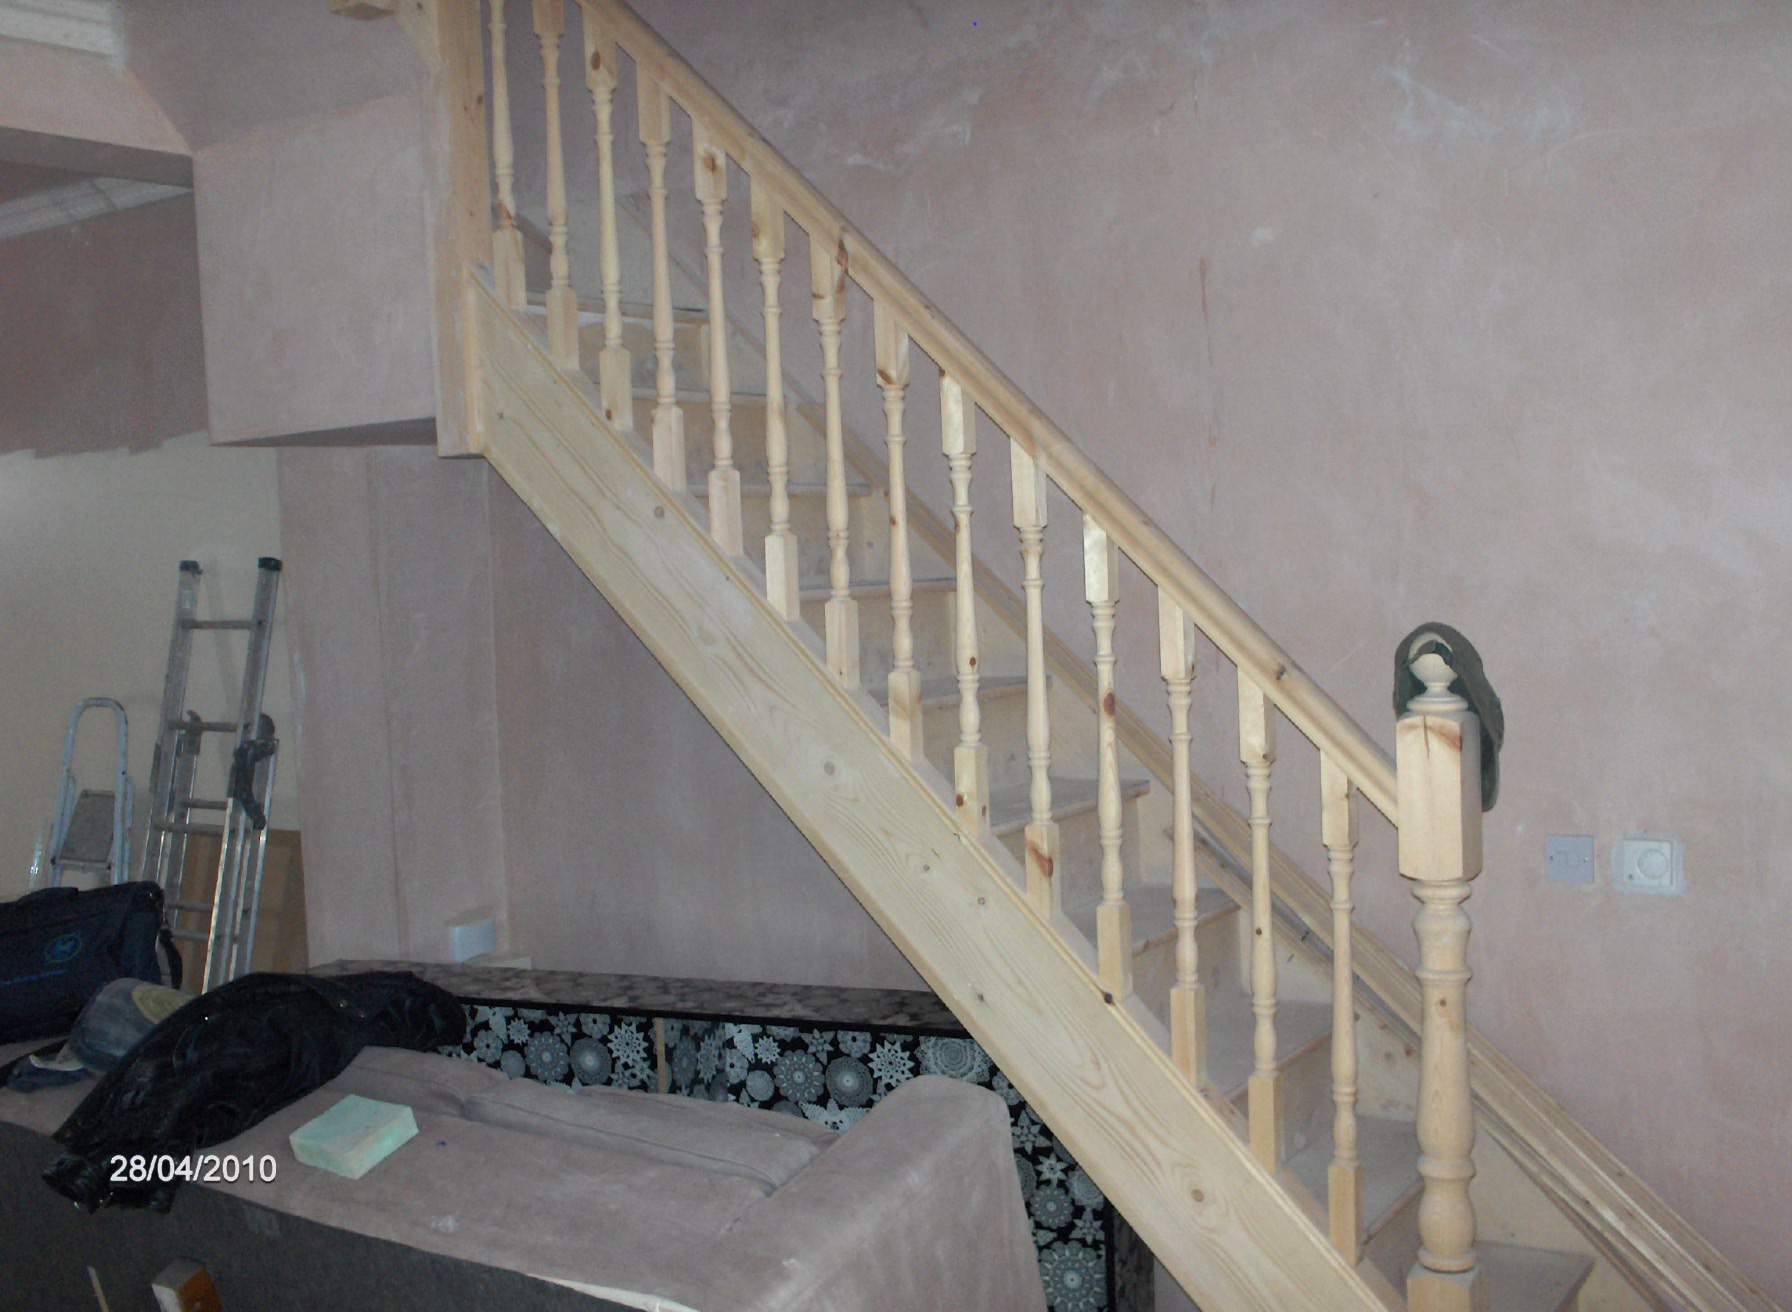 The new staircase and handrail was installed,